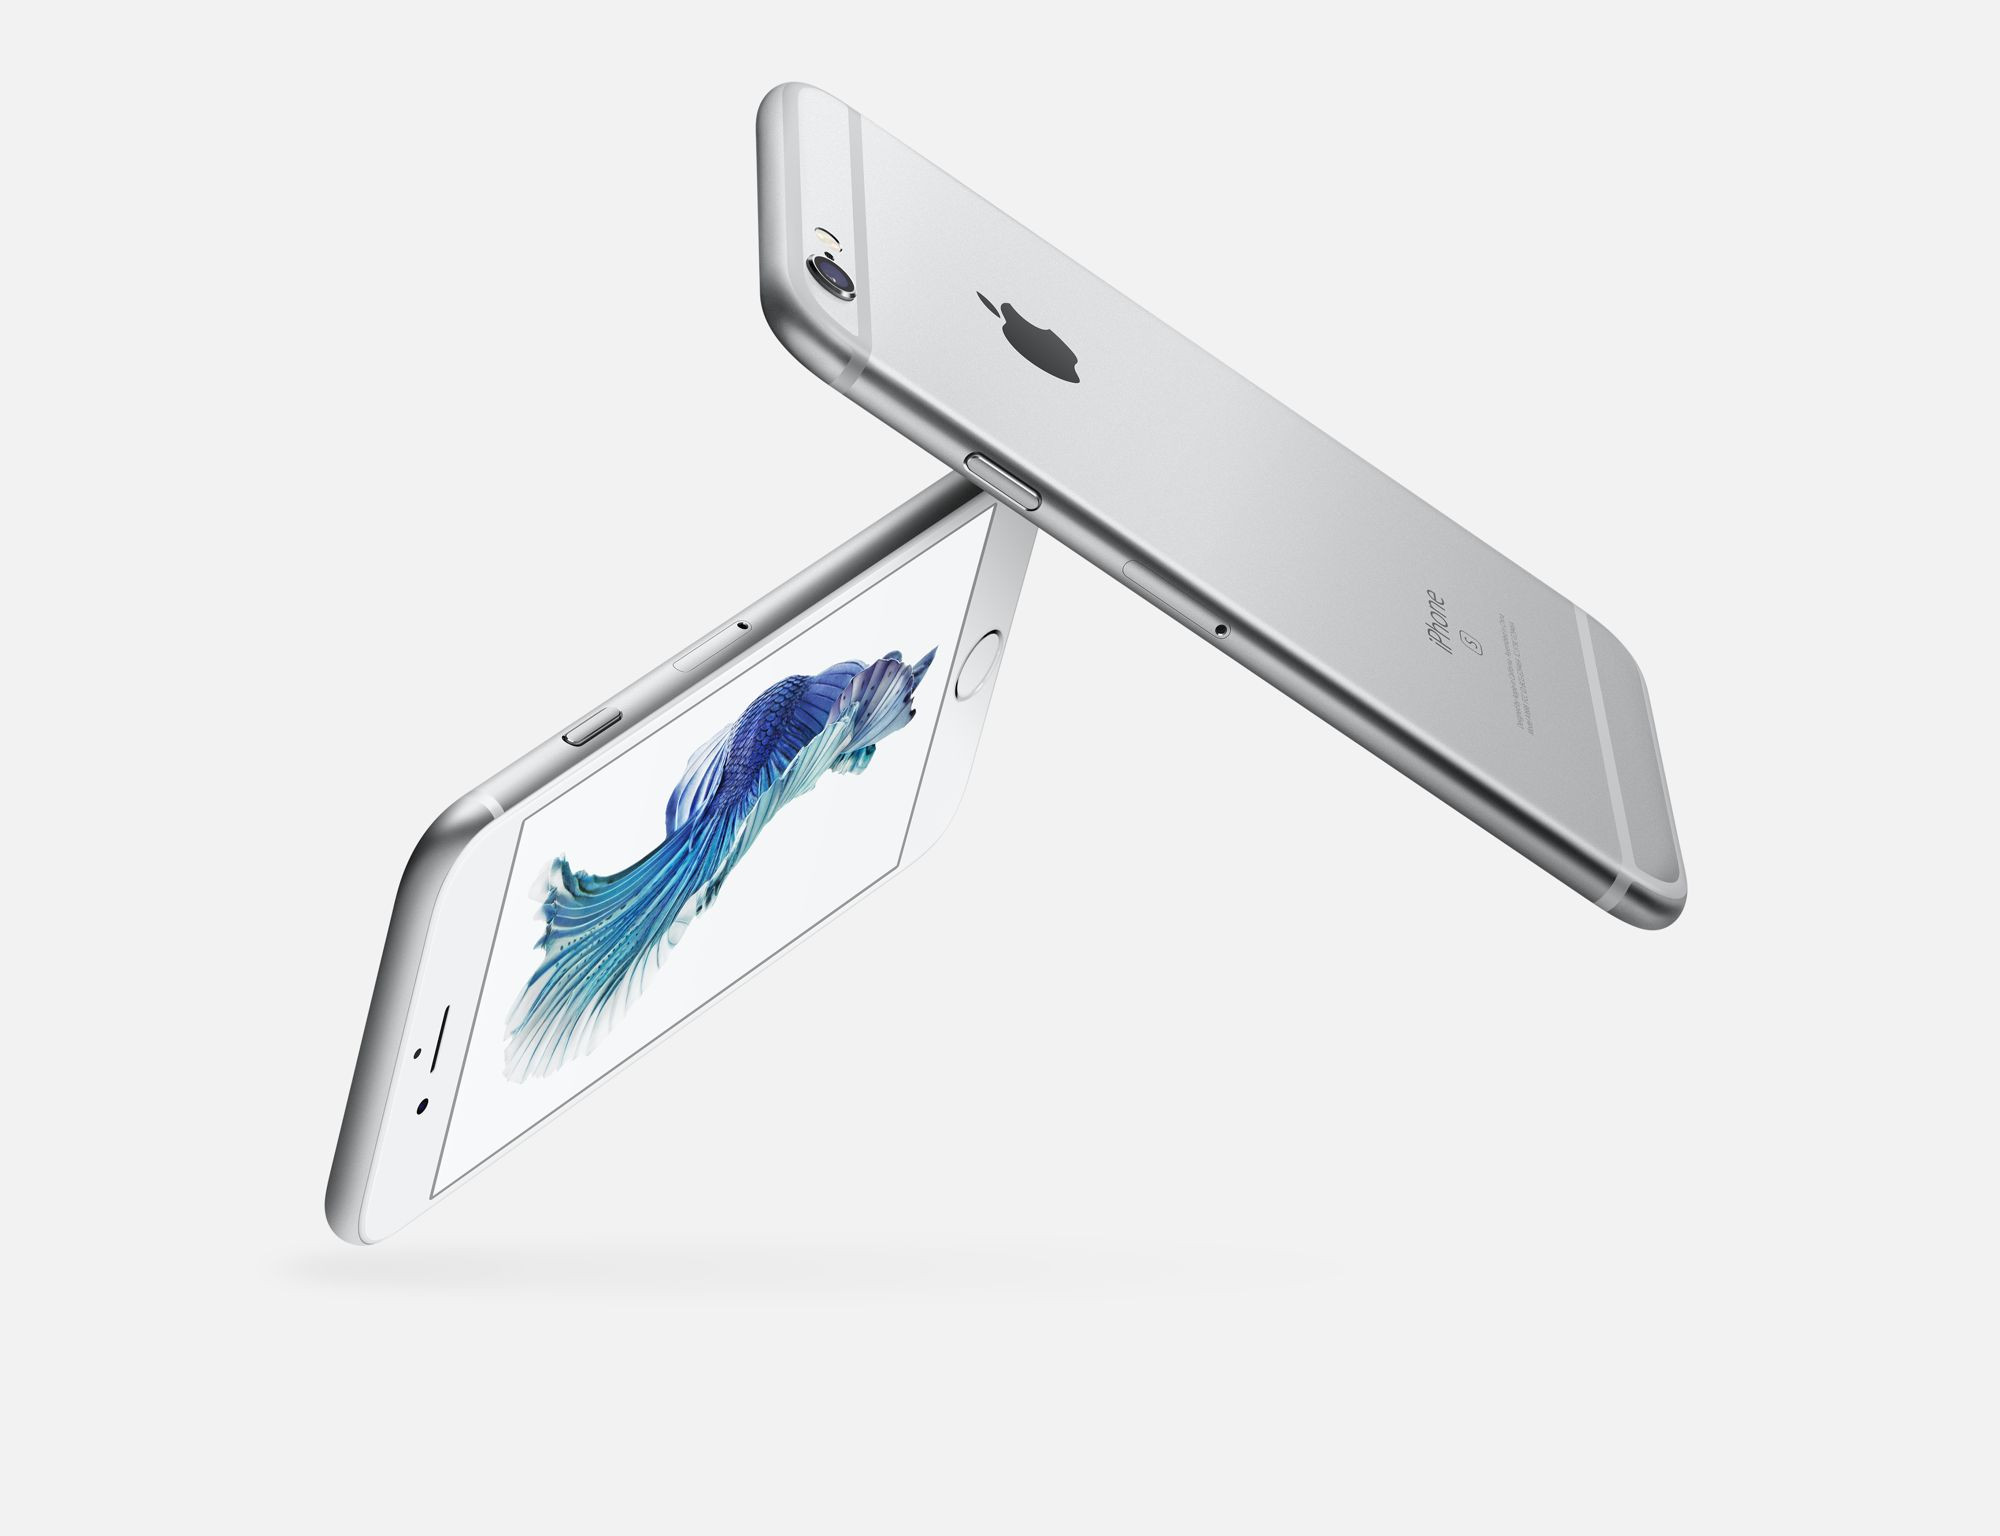 1441828567_apple-iphone-6s-all-the-official-images-3.jpg